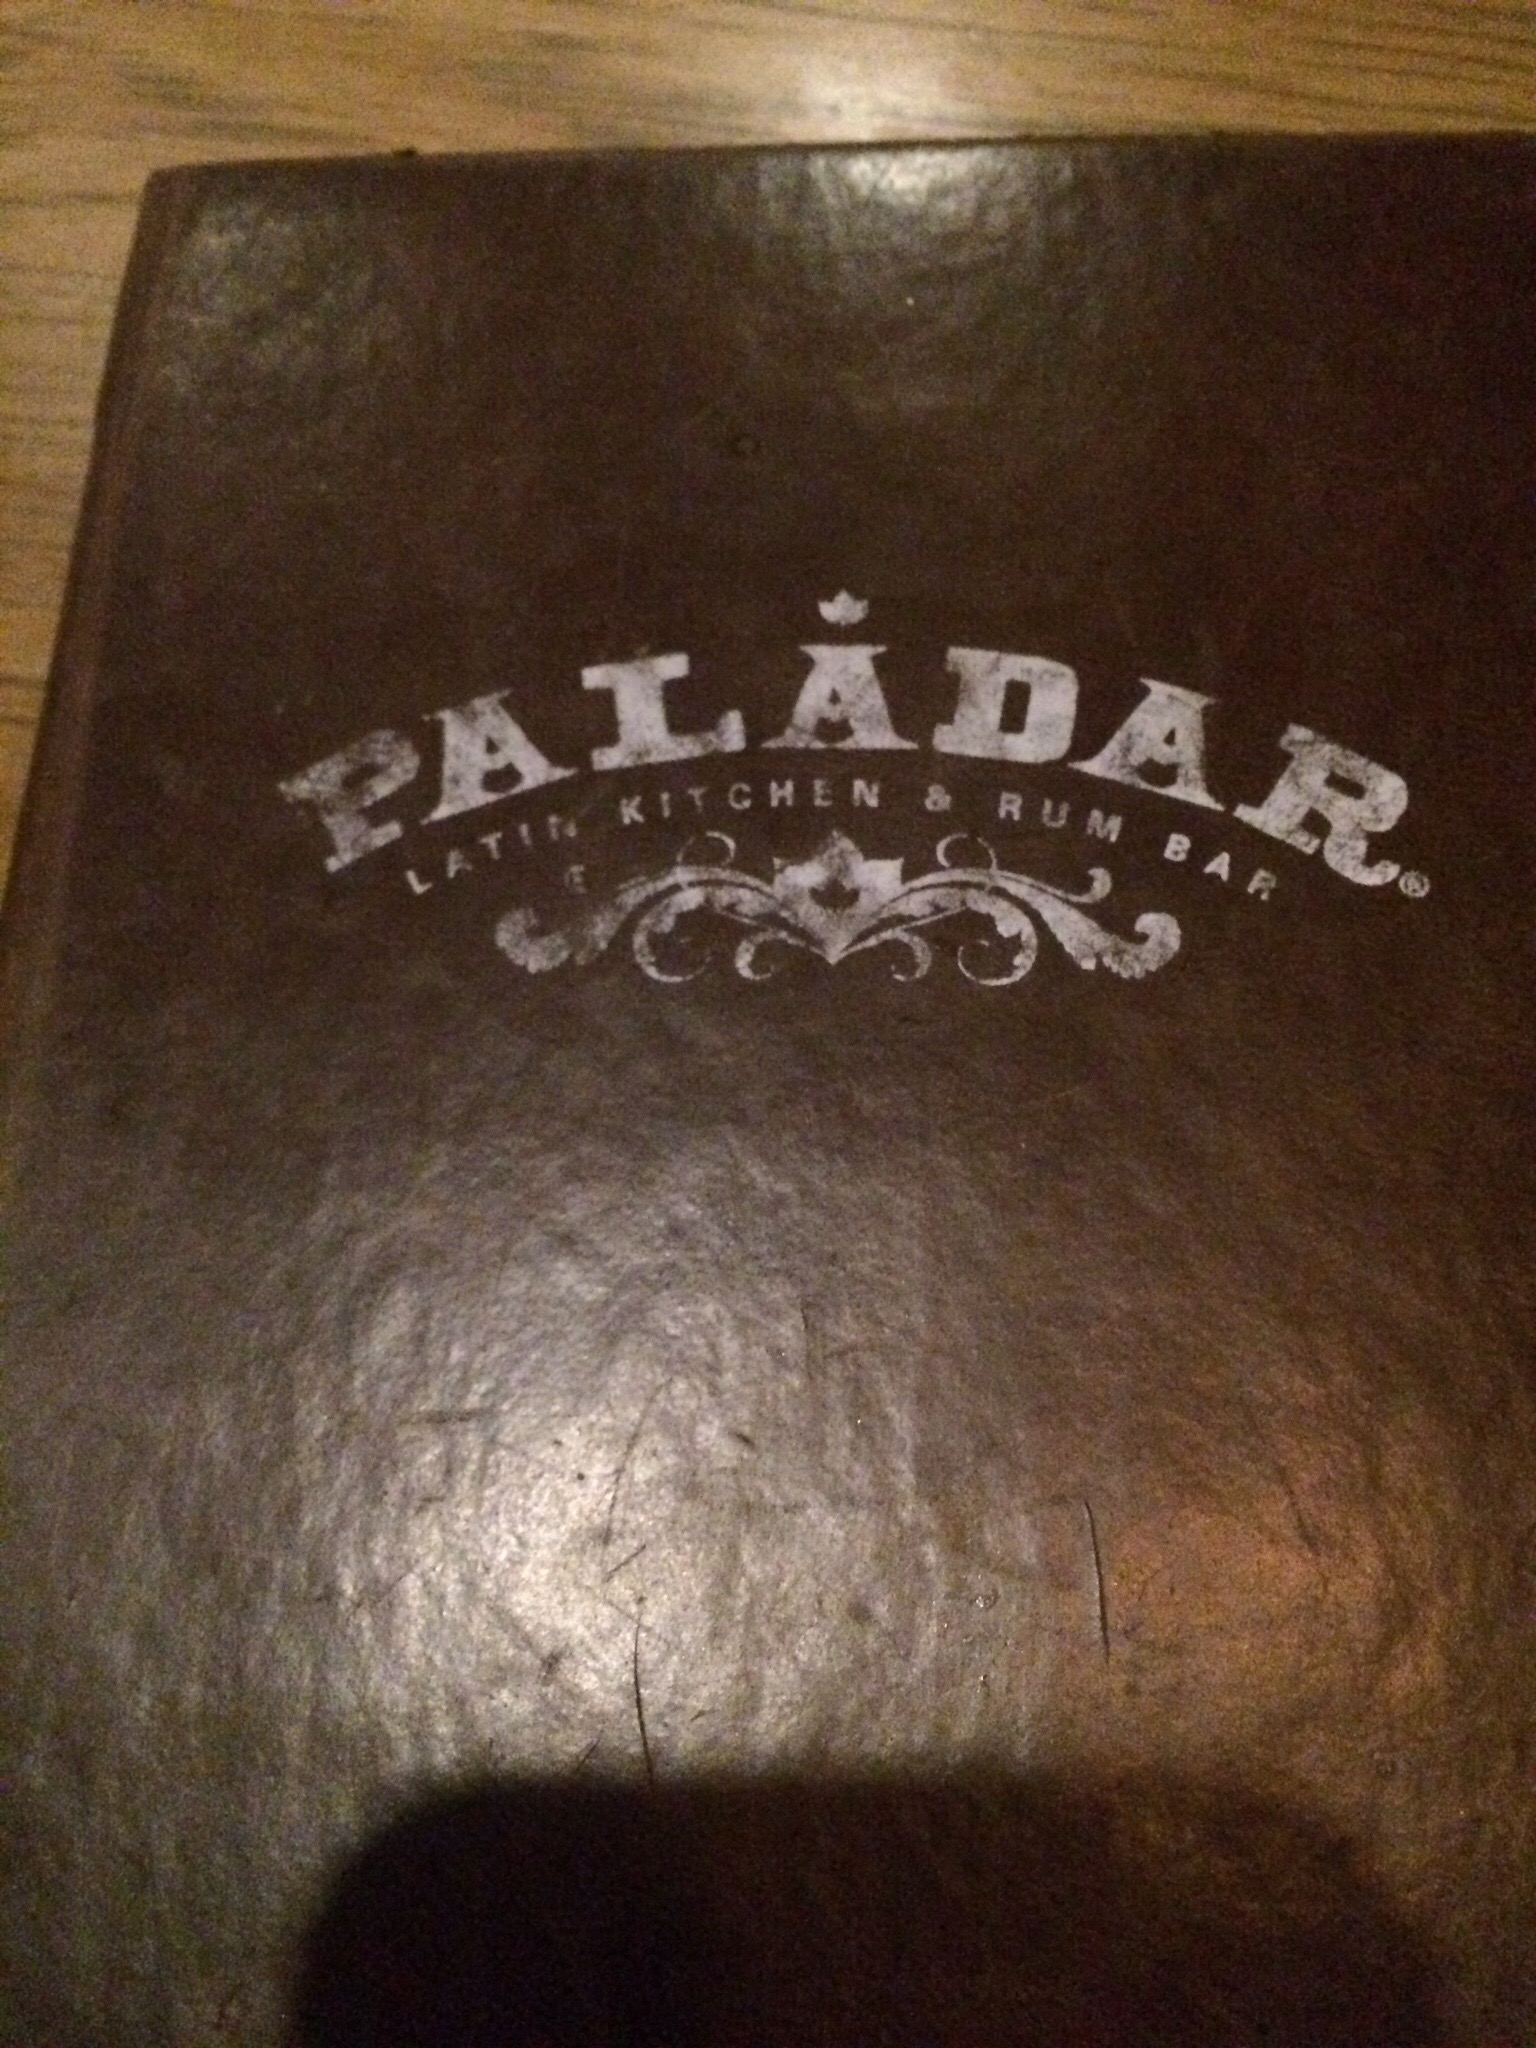 Restaurant Review (No Kids Edition) – Paladar Latin Kitchen & Rum Bar Tysons Corner, VA